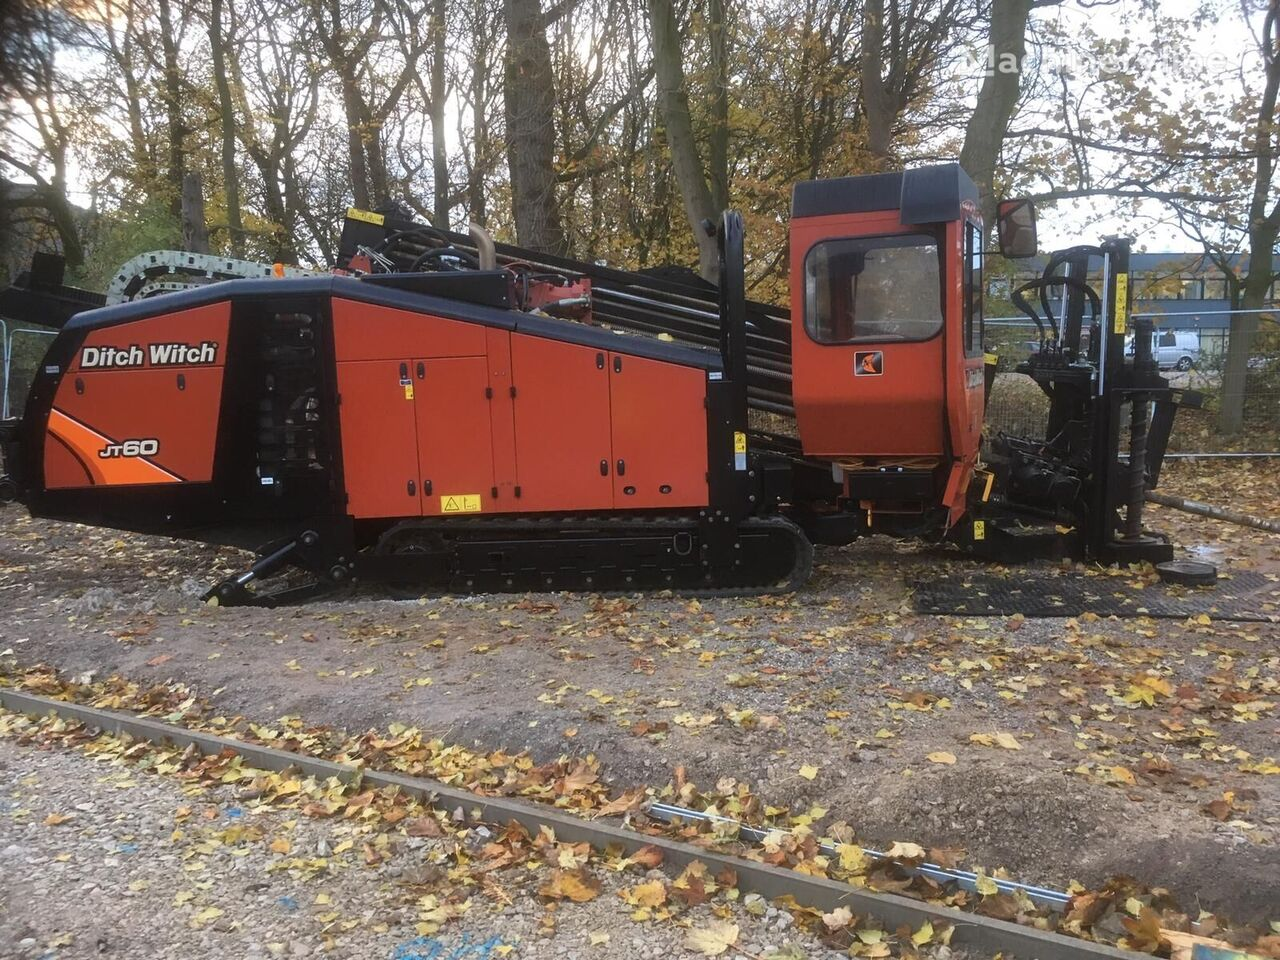 DITCH-WITCH JT60 horizontal drilling rig